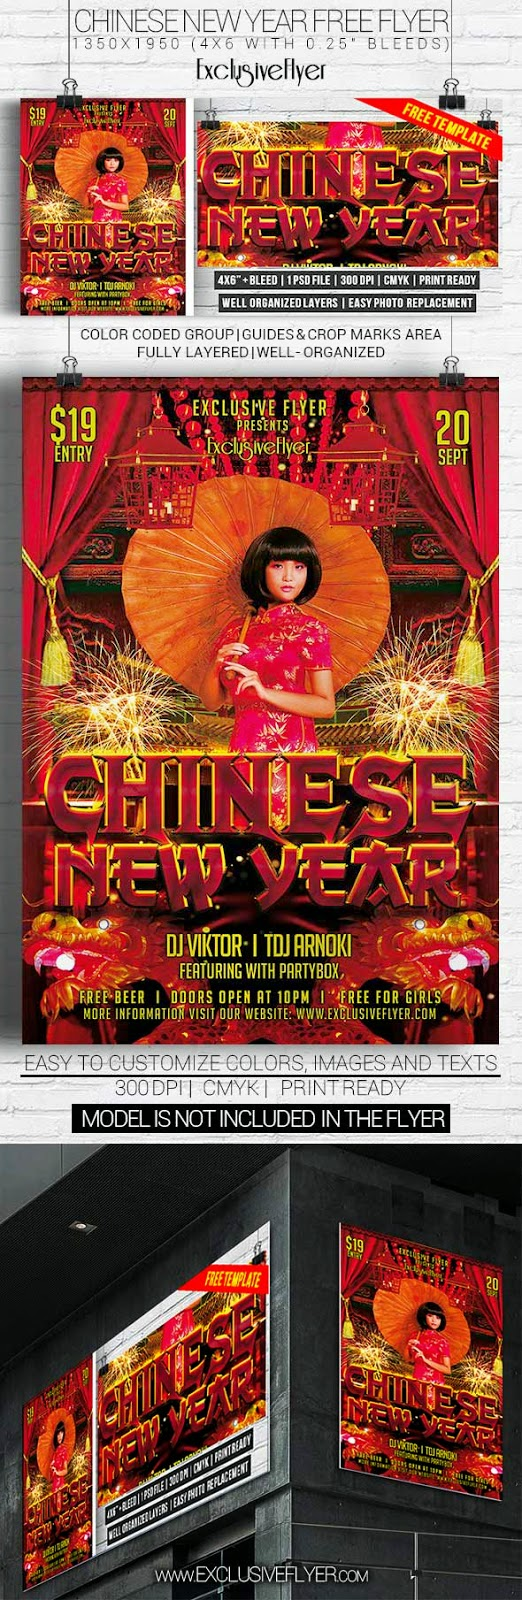 Chinese New Year Party Flyer PSD Template